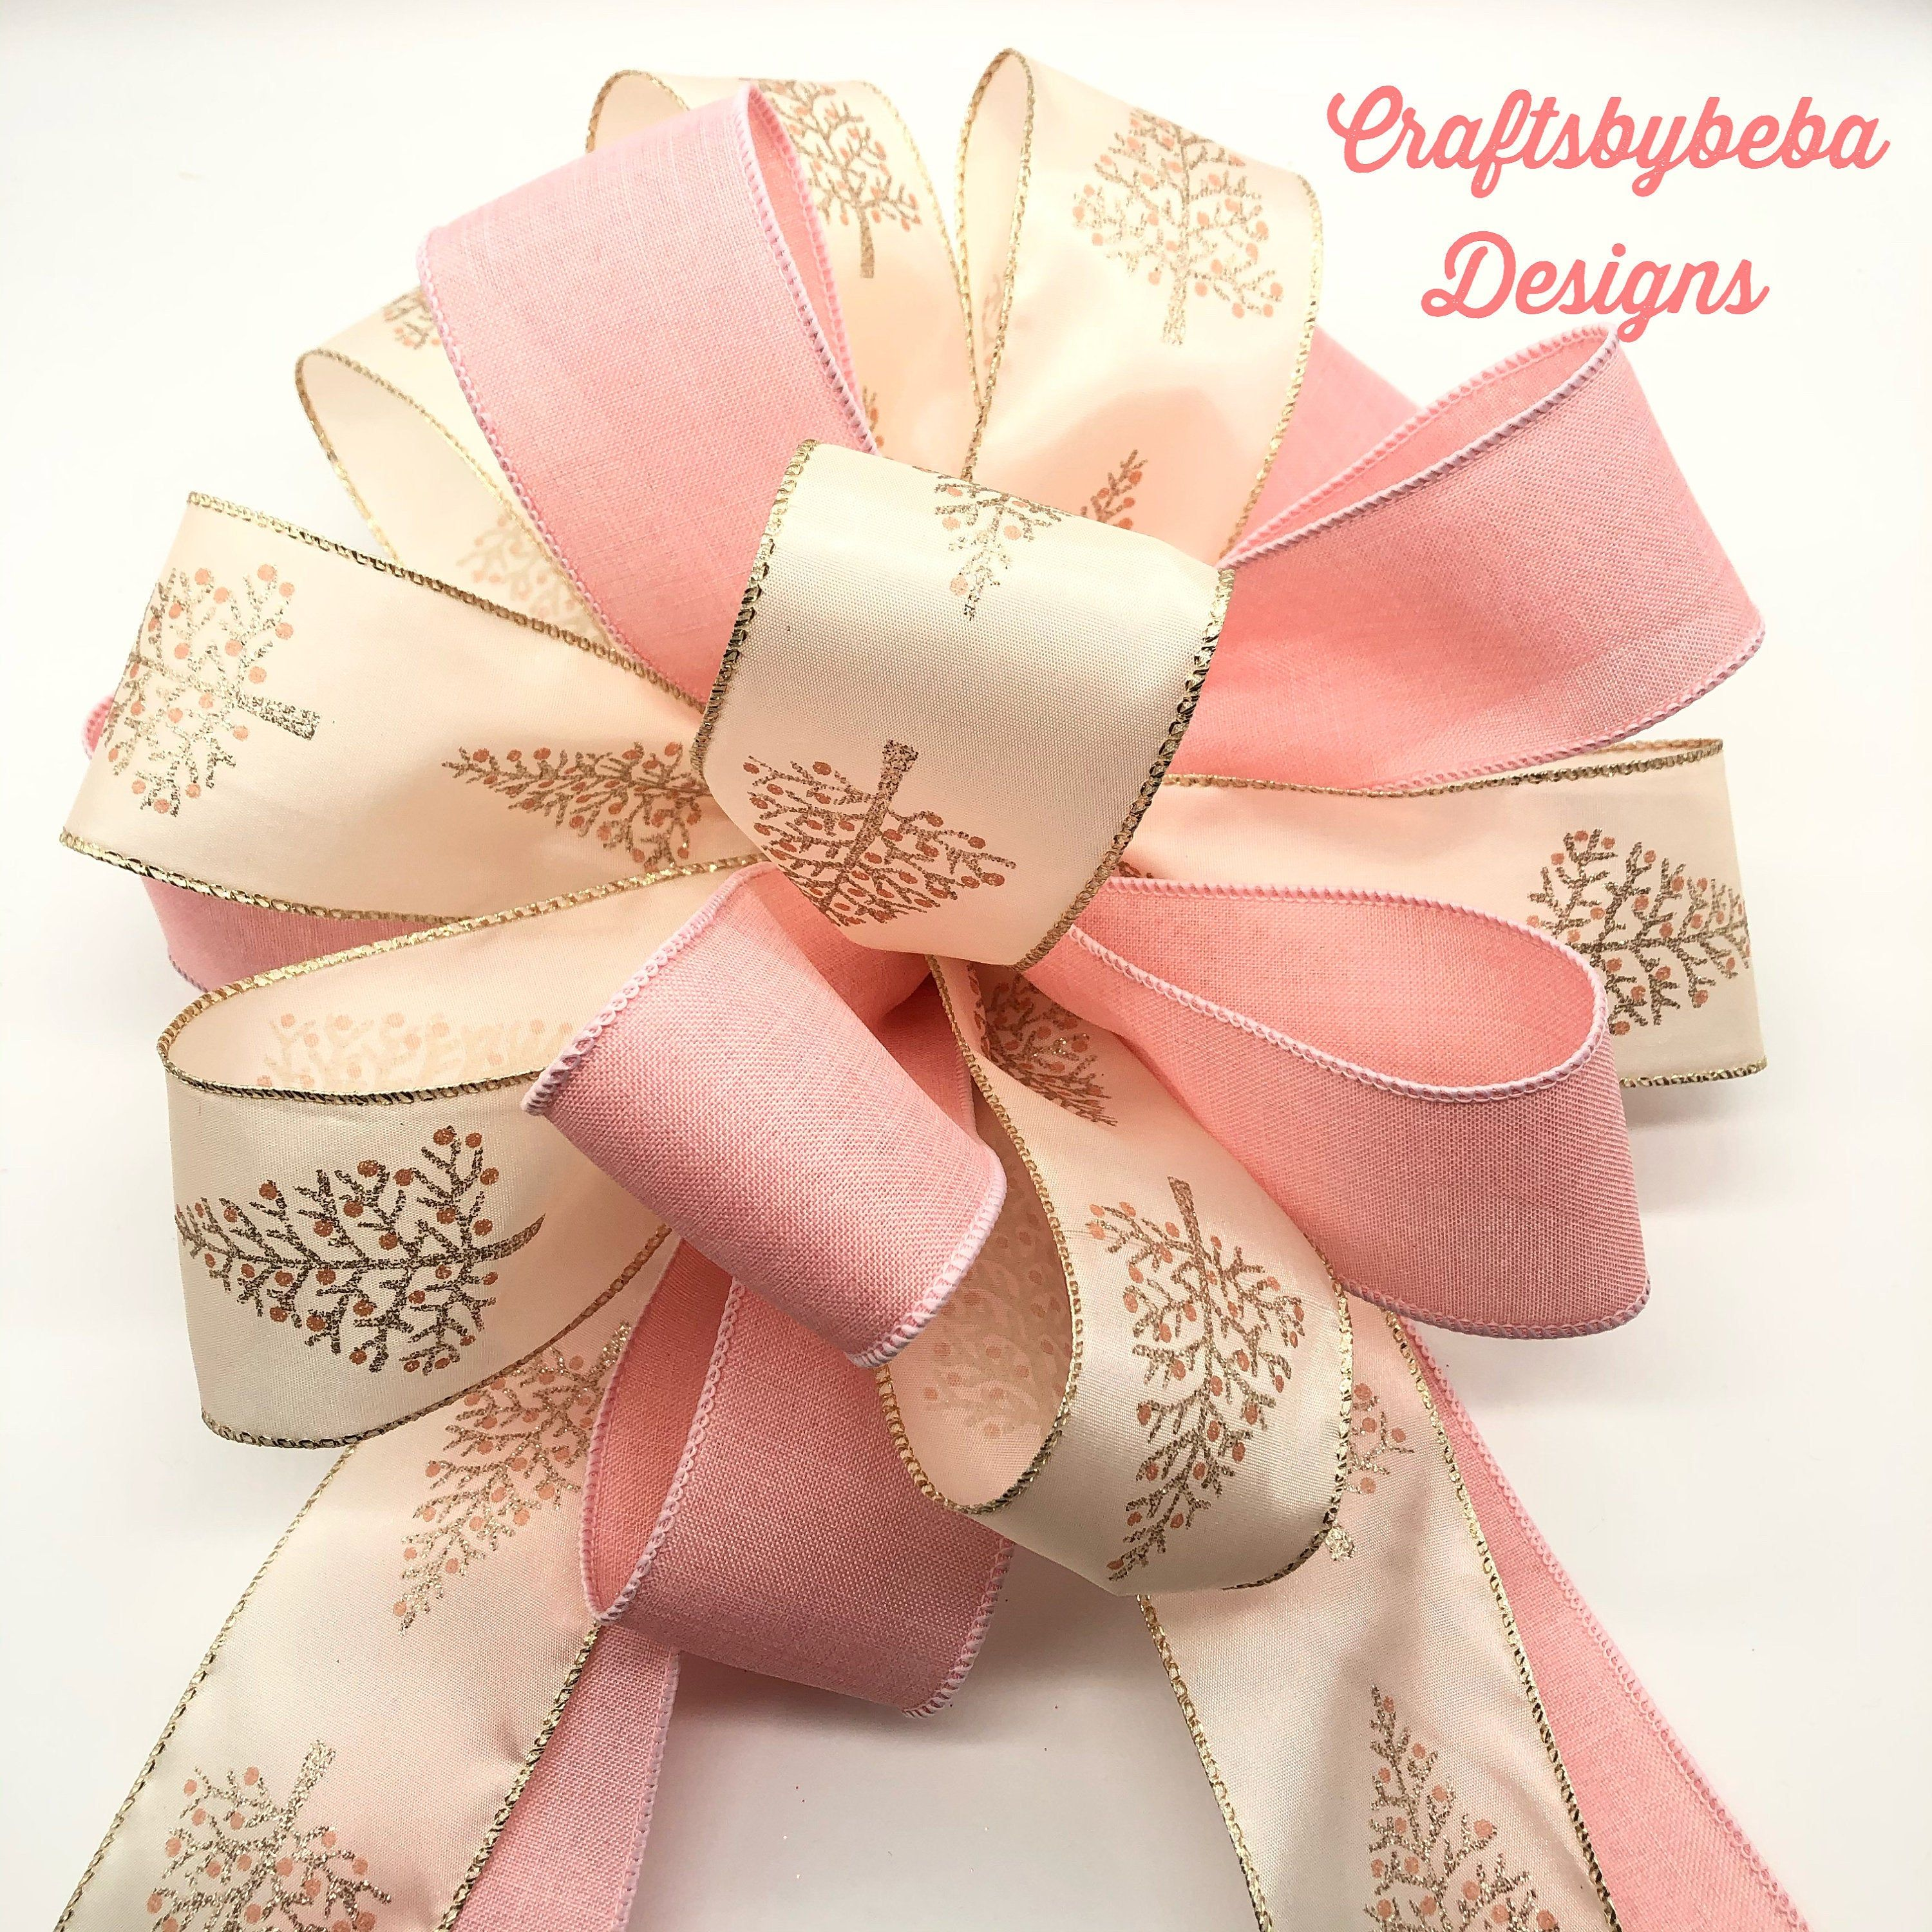 Blush Pink Christmas Tree Topper Xmas Tree Topper Blush Color Christmas Decorative Bow Ch Christmas Tree Bows Pink Christmas Gifts Christmas Tree Toppers